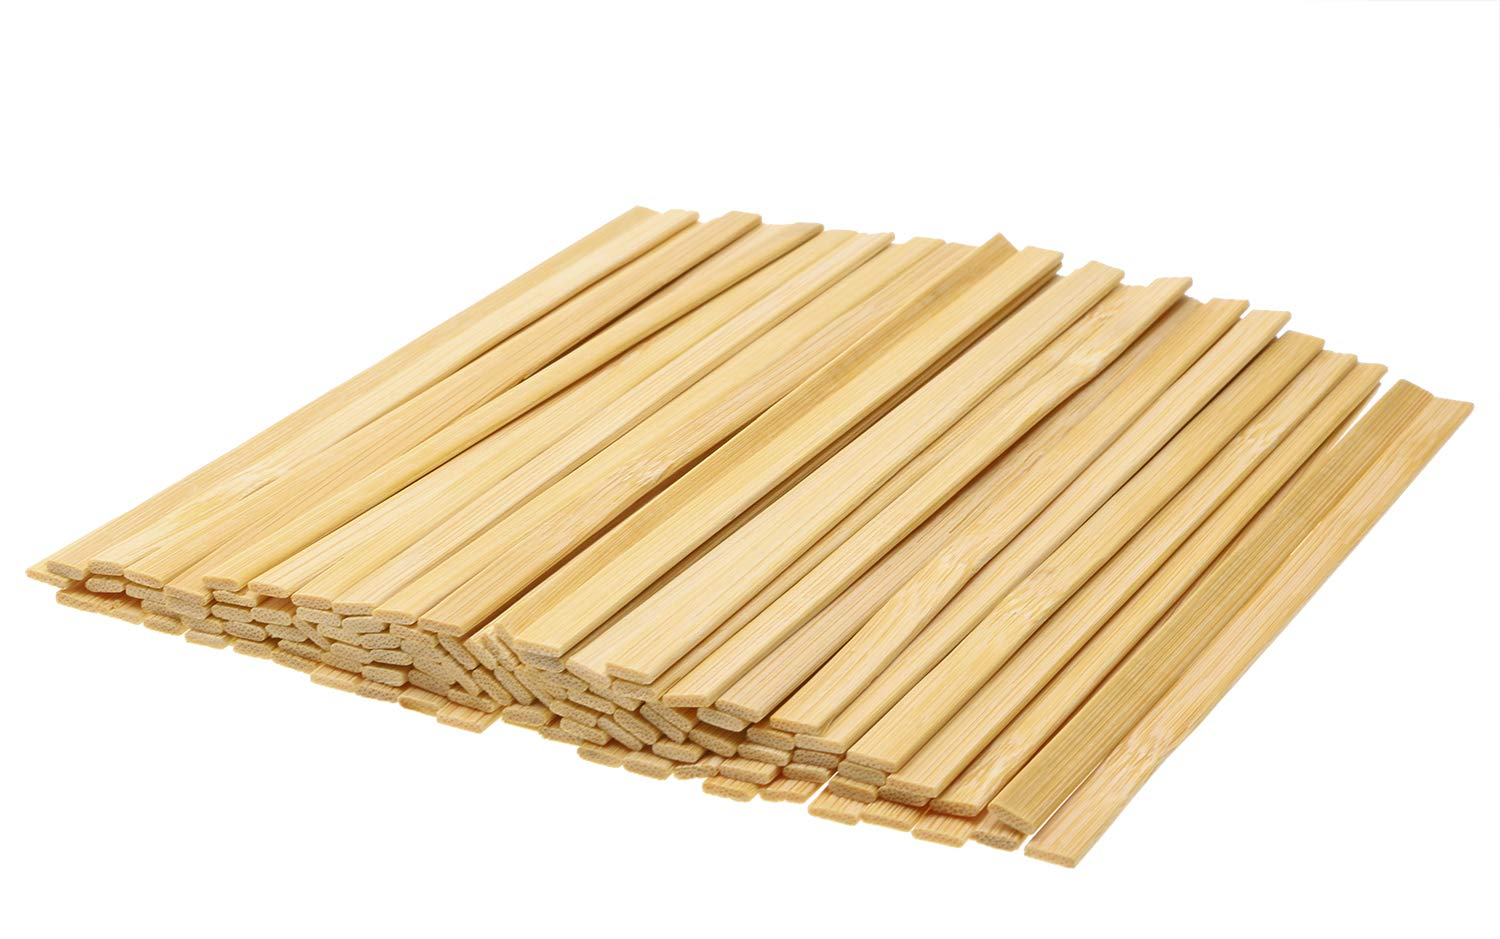 Mini Skater 5.4 Inch Bamboo Coffee Stirrers Eco Friendly Biodegradable Stir Sticks for Tea Hot Cold Beverages (100) by Mini Skater (Image #4)